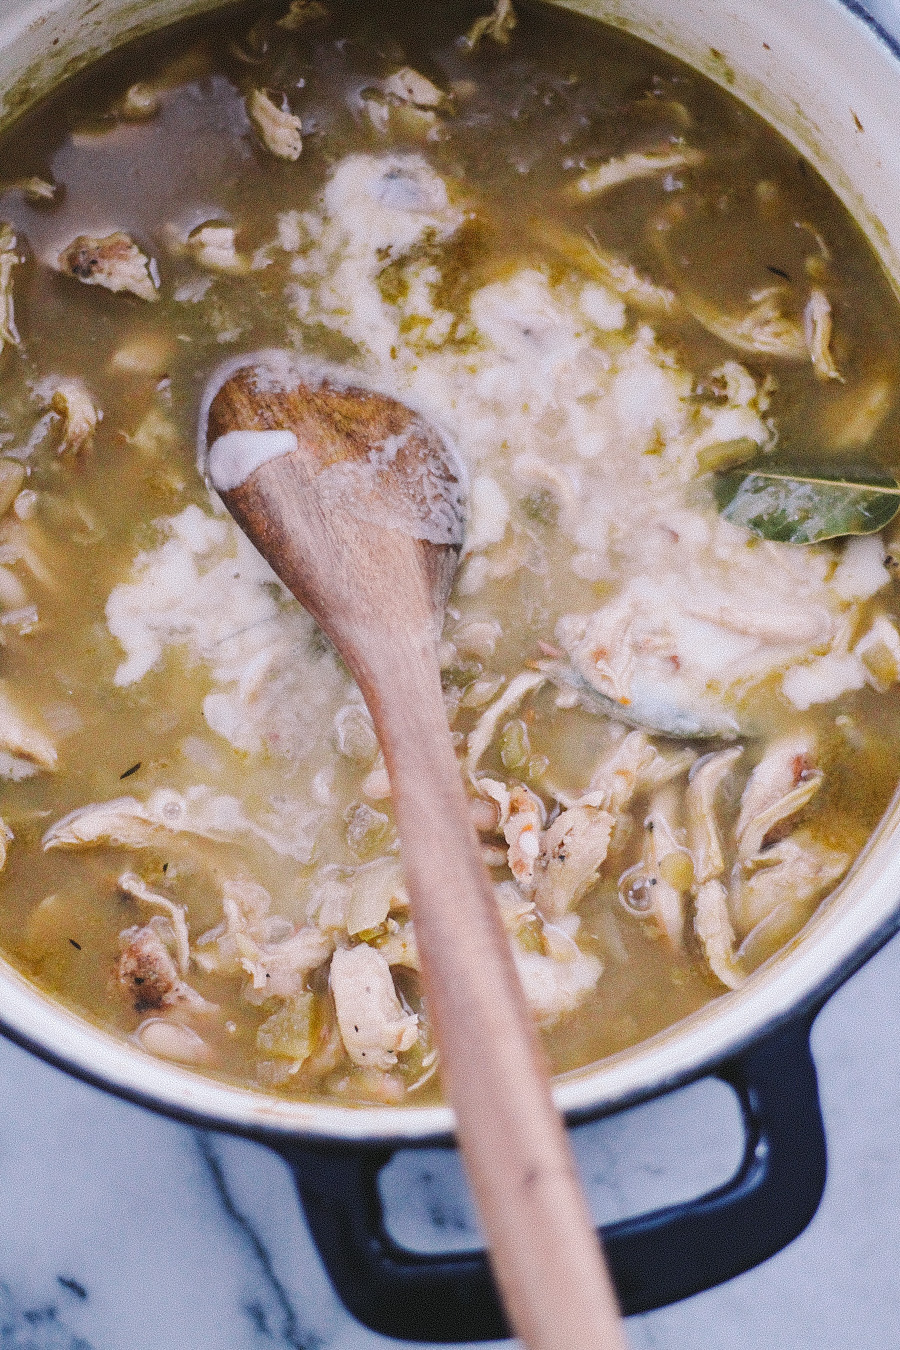 white chili via playswellwithbutter | packed with flavor from a carefully built base of onions, chili peppers, & warm spices, this white chili is braised with beer, loaded with pulled roasted chicken breast, & thickened with masa harina. oh, & if that didn't win you over, spoonfuls of white chili make for the perfect vessel for guacamole. #boom.